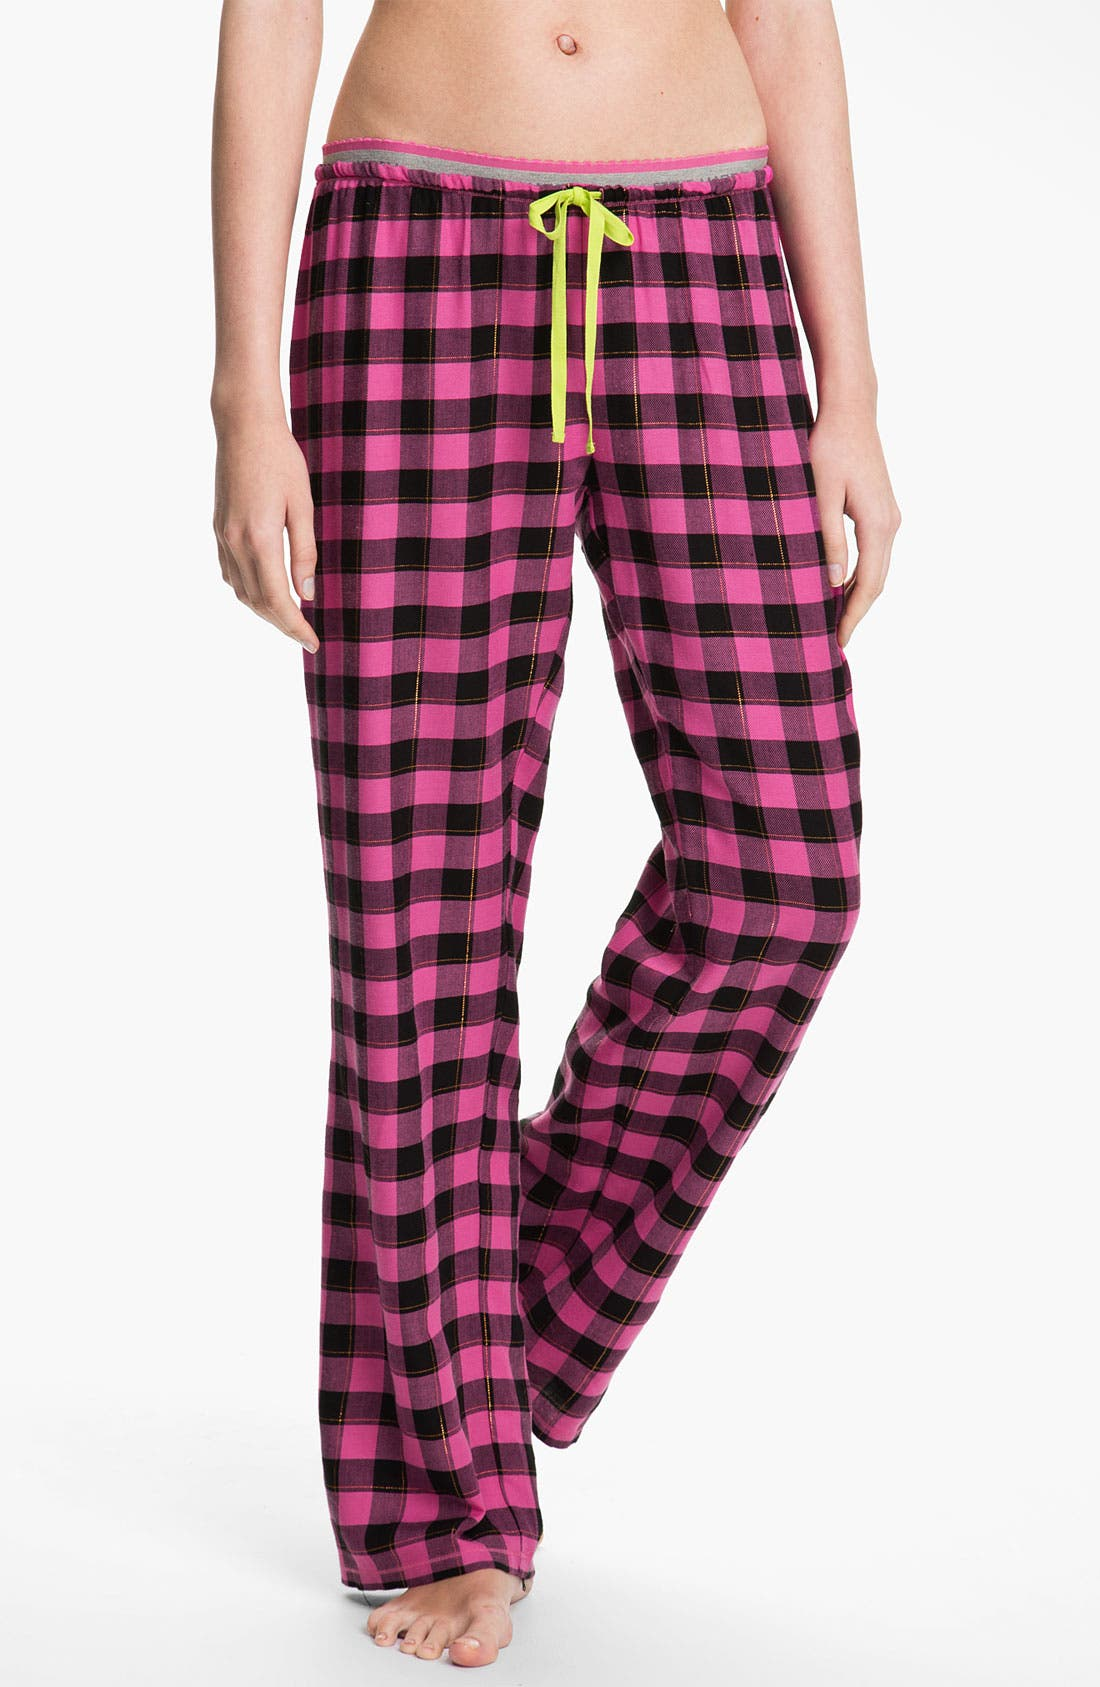 Alternate Image 1 Selected - Steve Madden 'Pattern Play' Plaid Pants